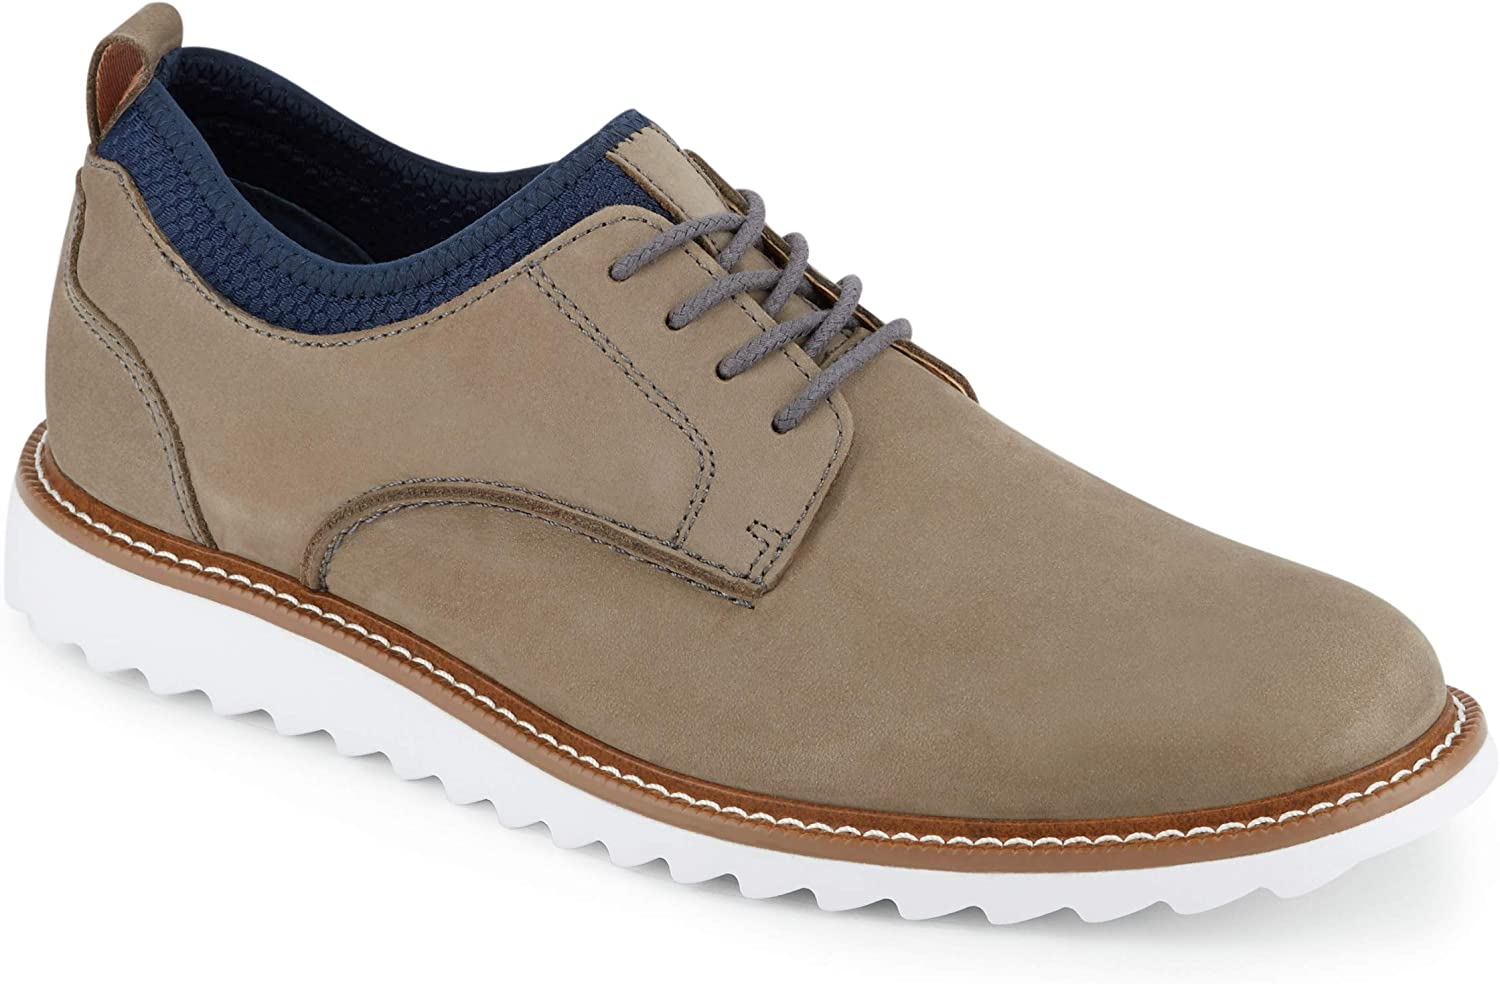 Dockers Mens Fleming Leather Smart Series Dress Casual Oxford Shoe, Grey/Navy, 9 M